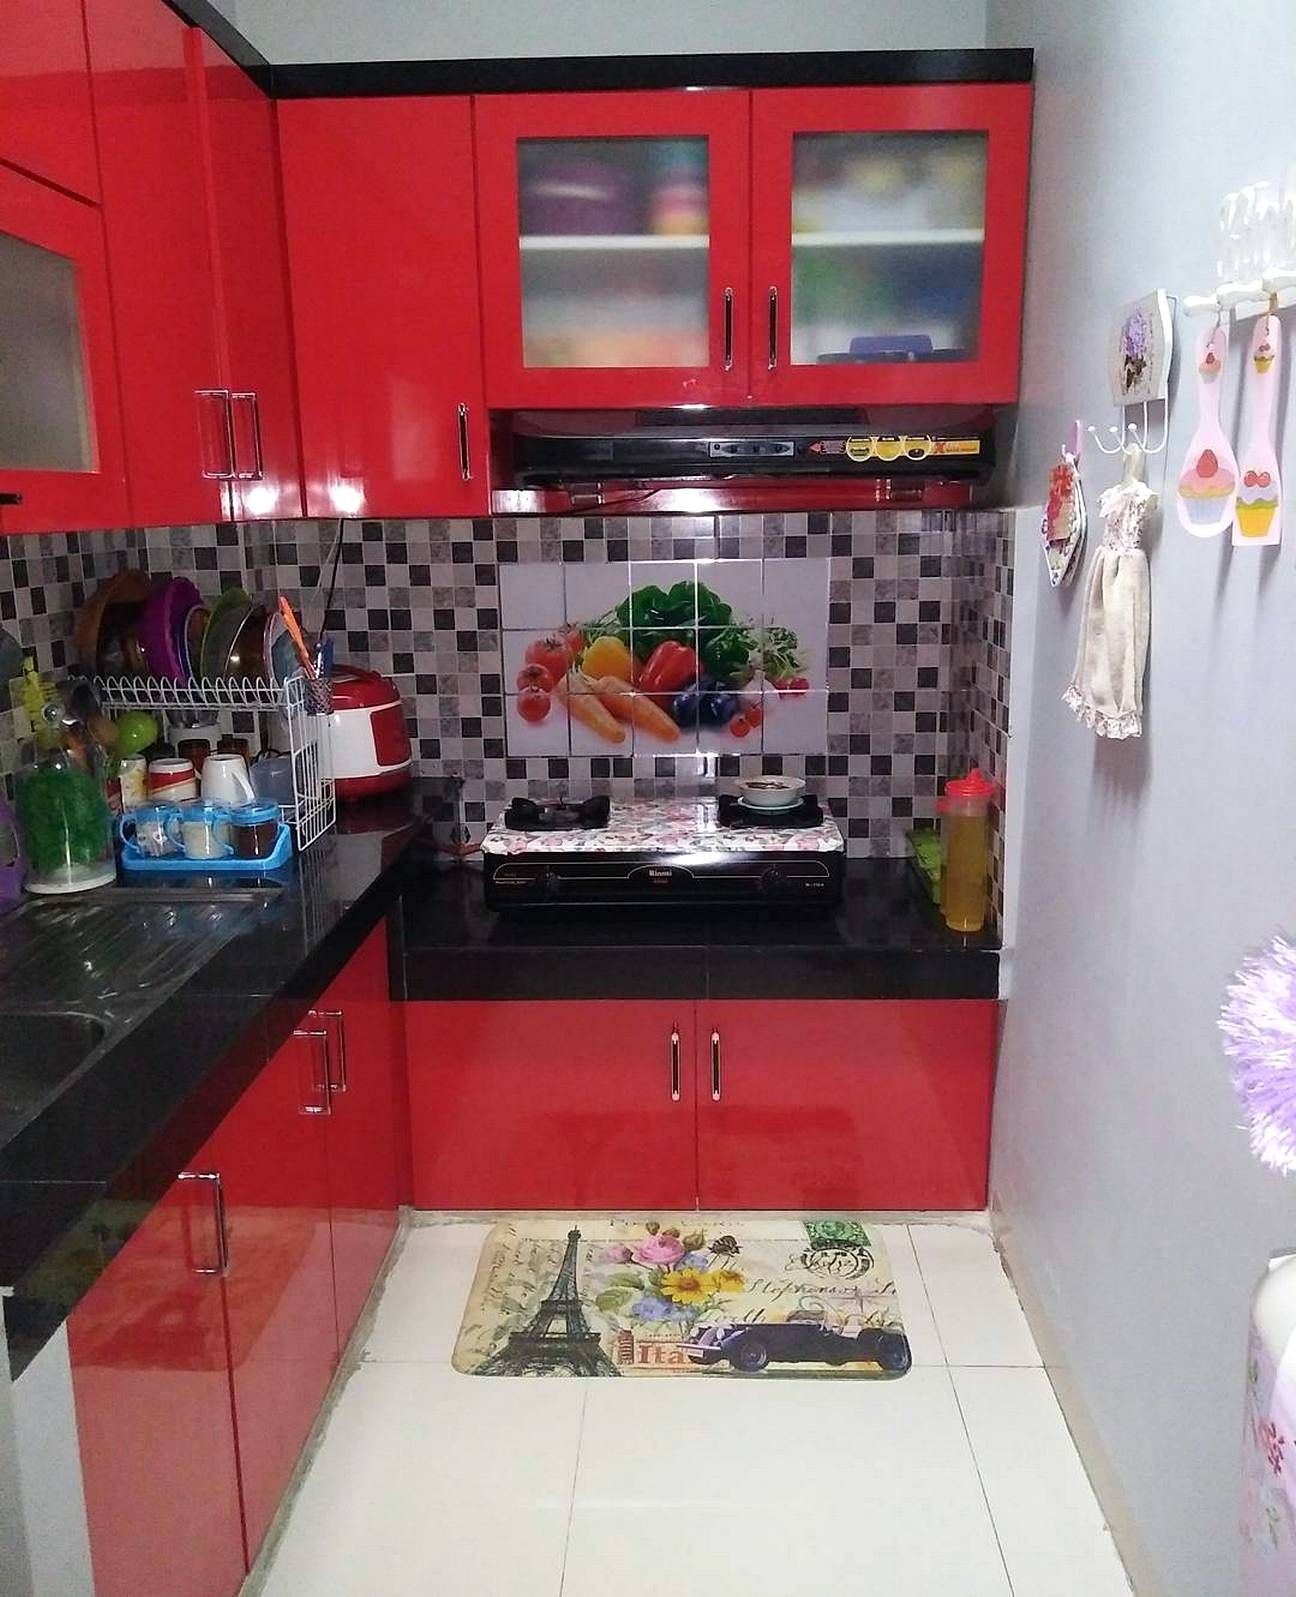 Motif keramik dapur sempit warna merah dipadu dengan motif for Kitchen set warna putih